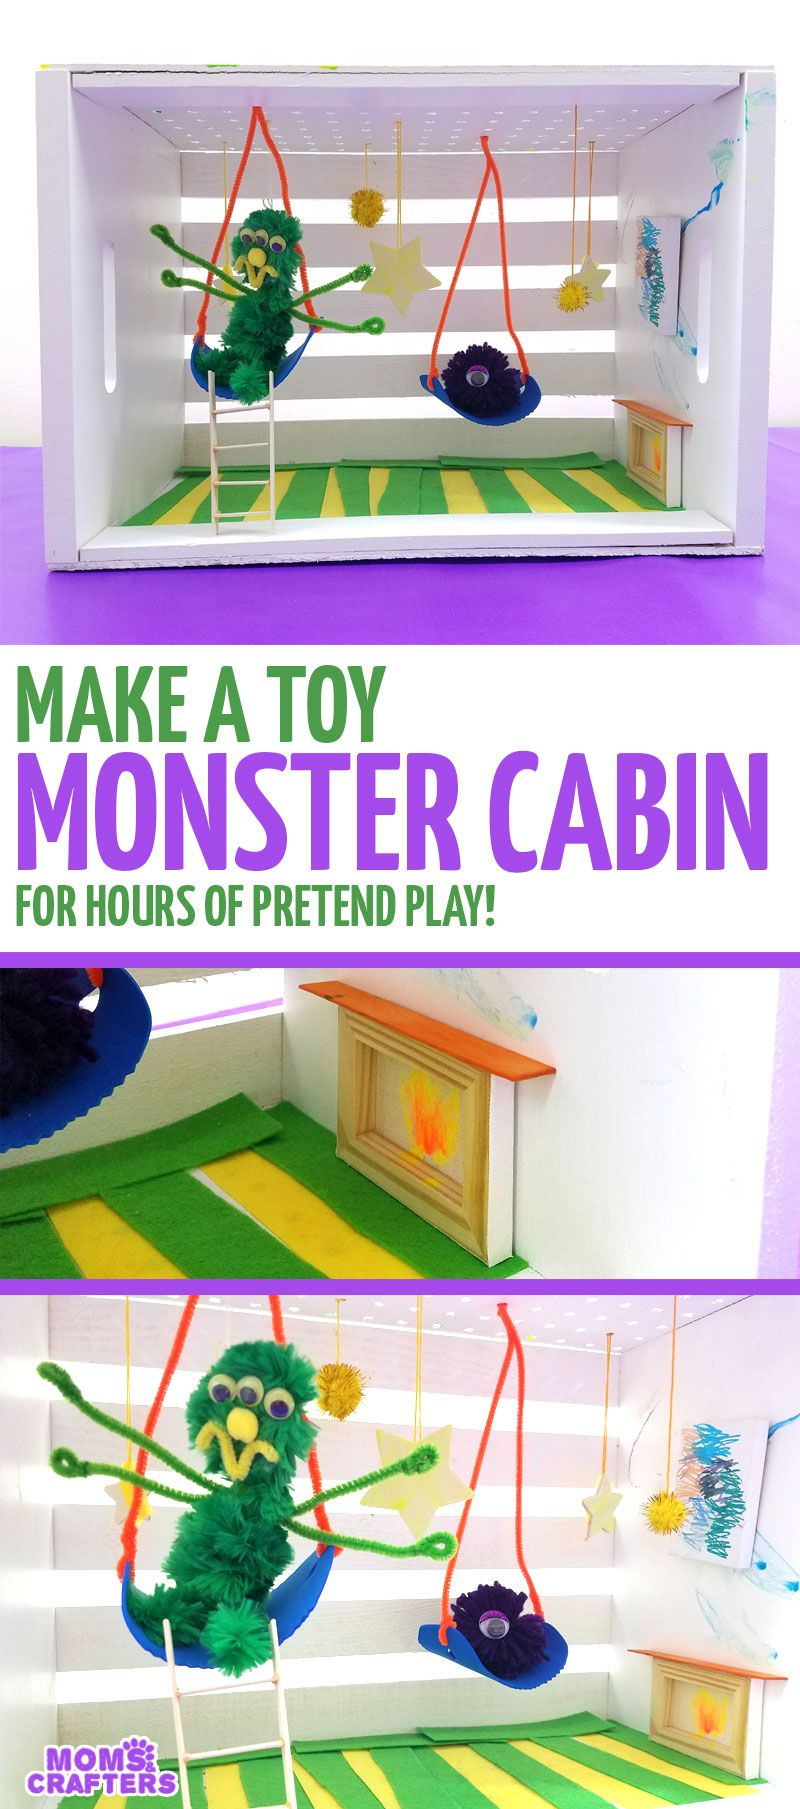 Make your own diy monster cabin toy for pretend play sponsored i make your own diy monster cabin toy for pretend play sponsored i solutioingenieria Image collections